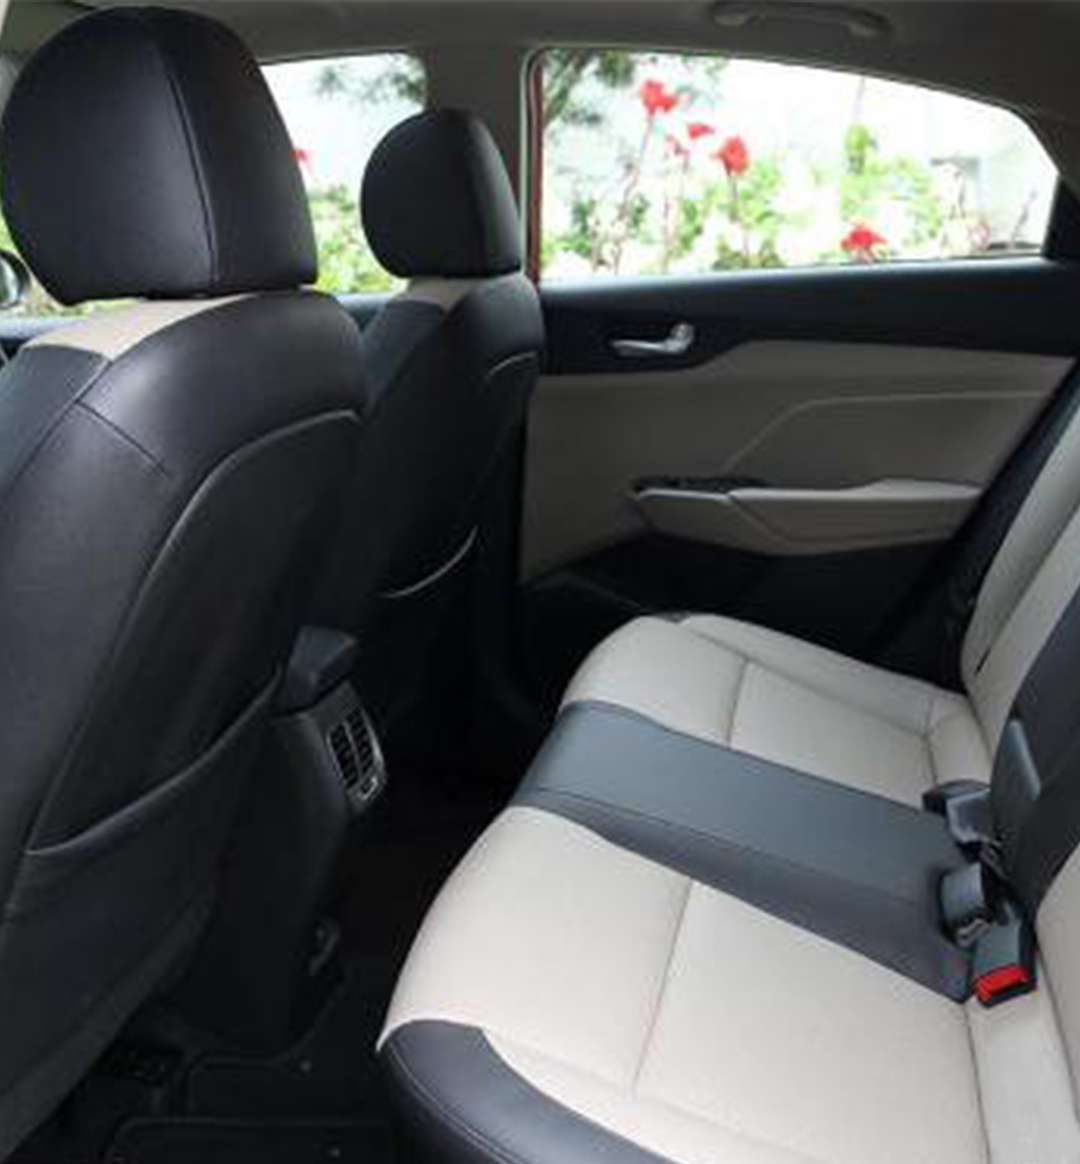 https://iciciauto.com/storage/upload/model_images/Hyundai Verna-Sedan-Seating .jpg